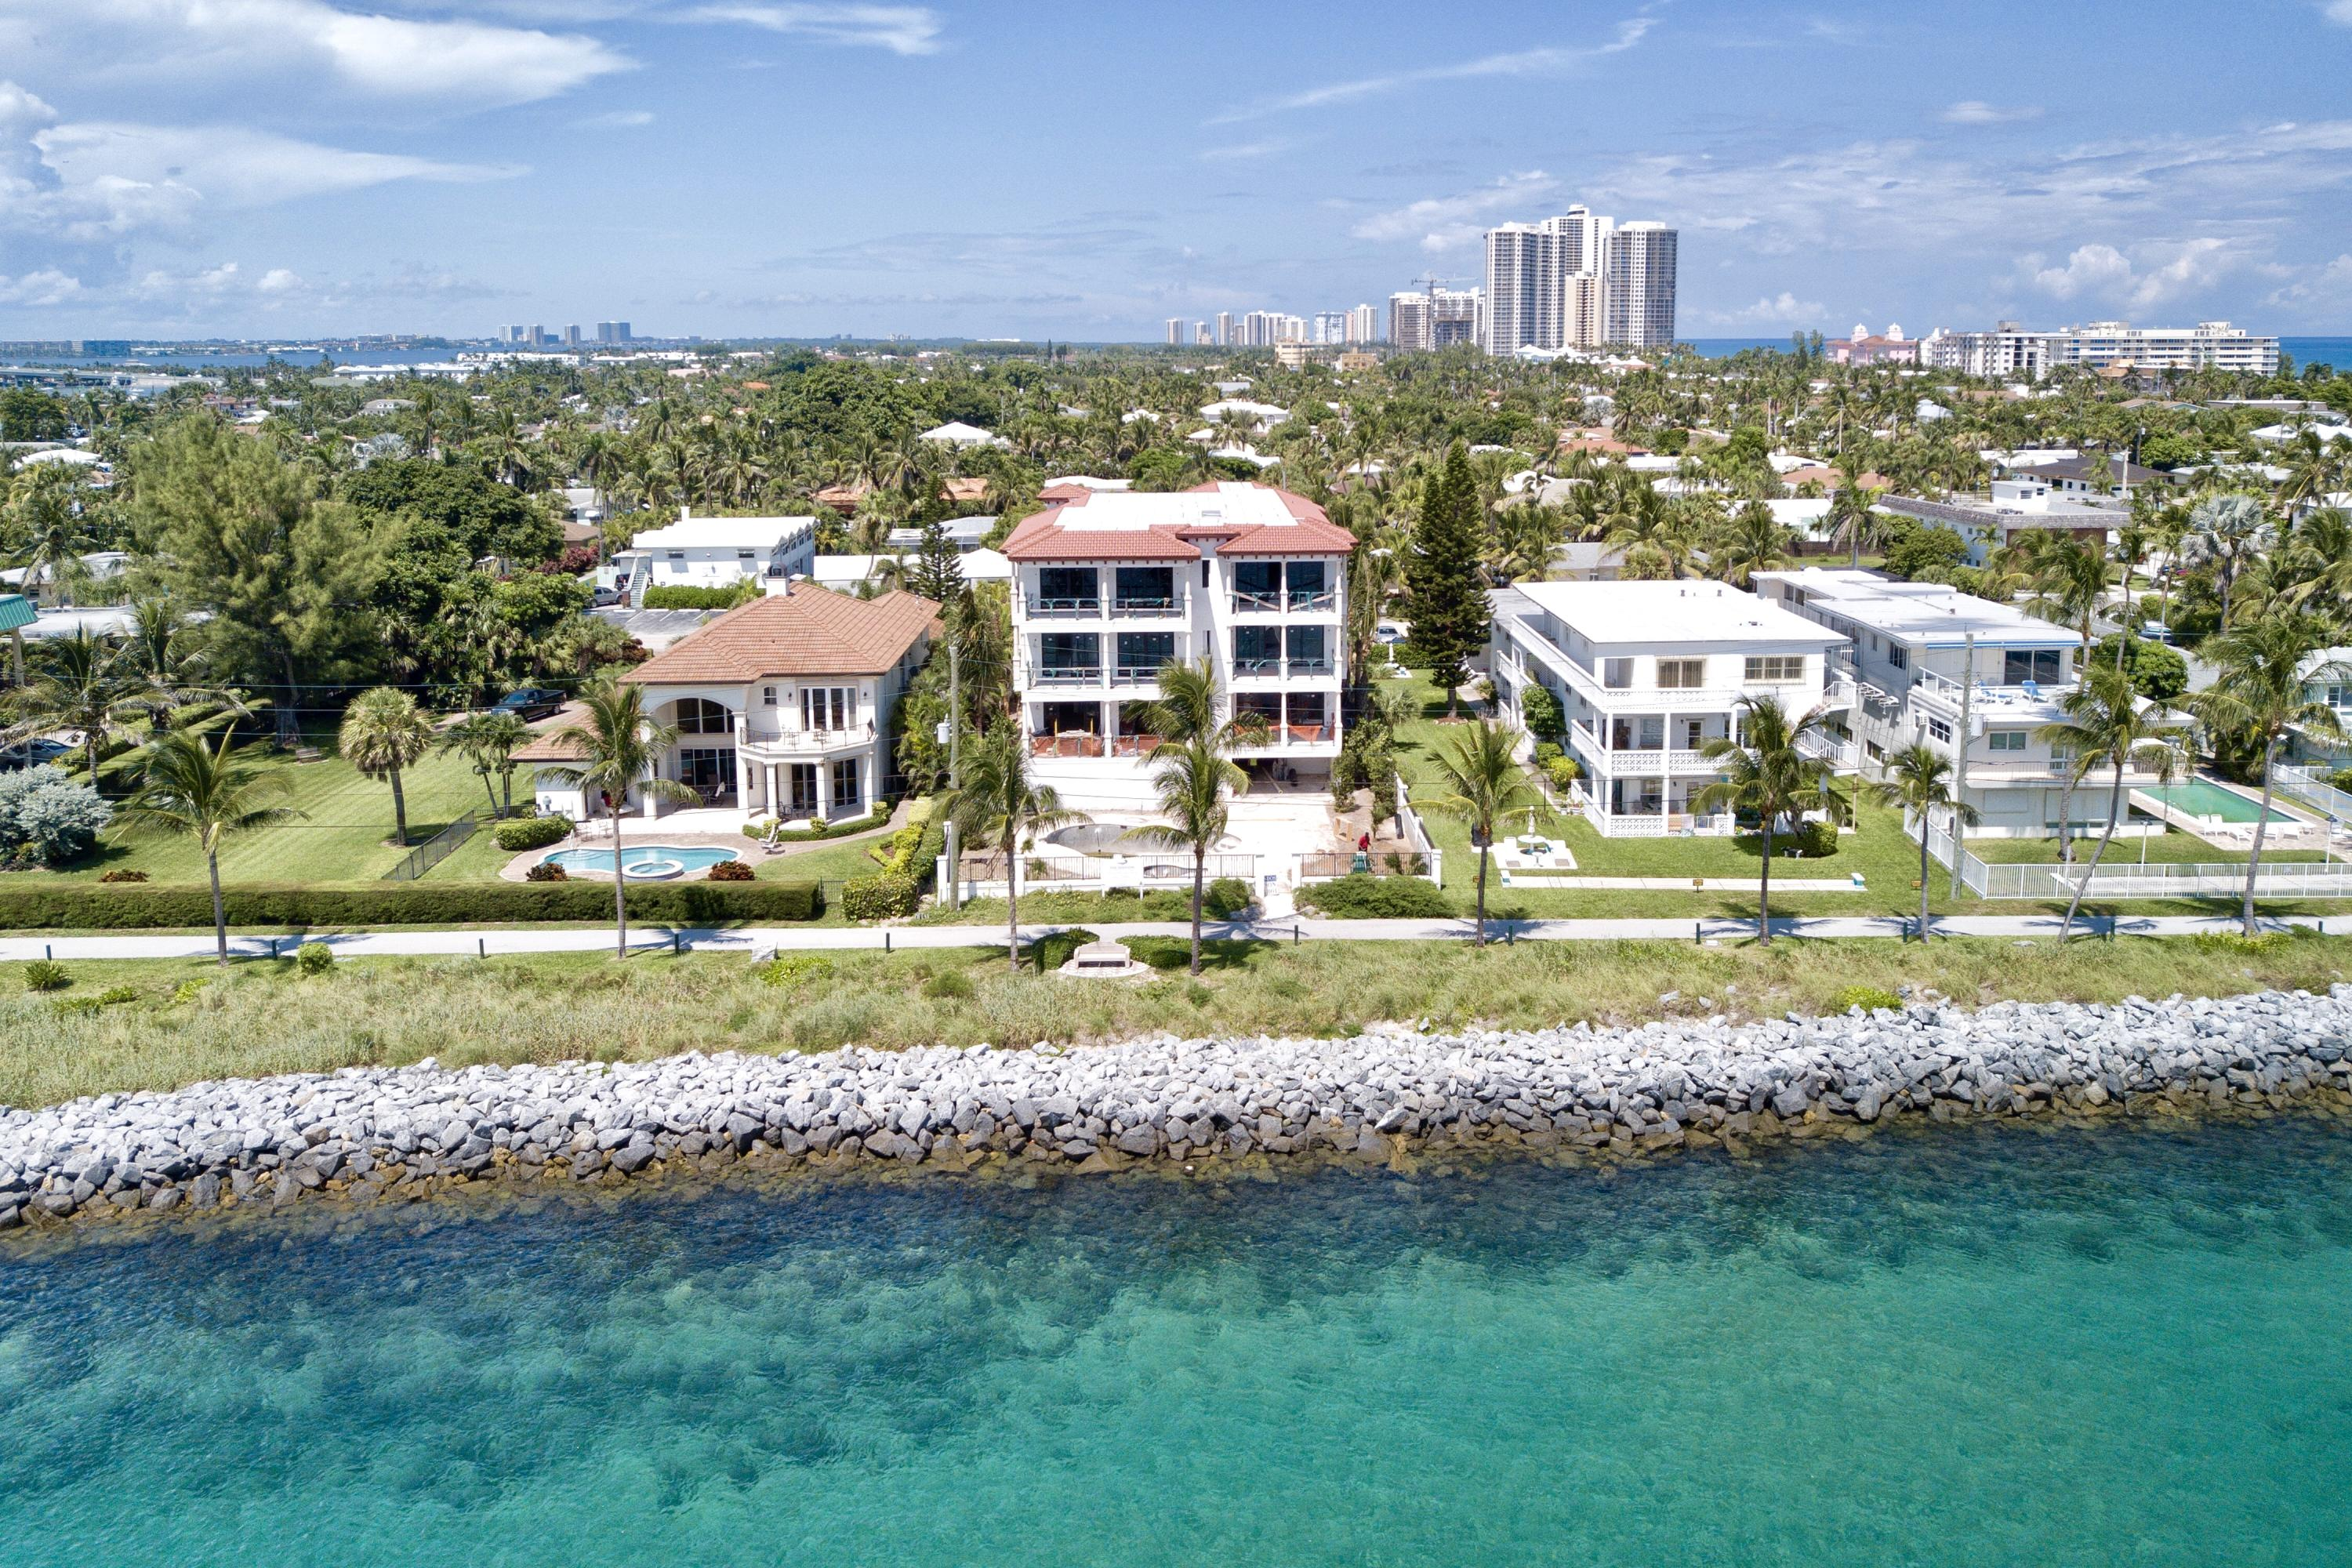 THE ADDISON SINGER ISLAND REALTY